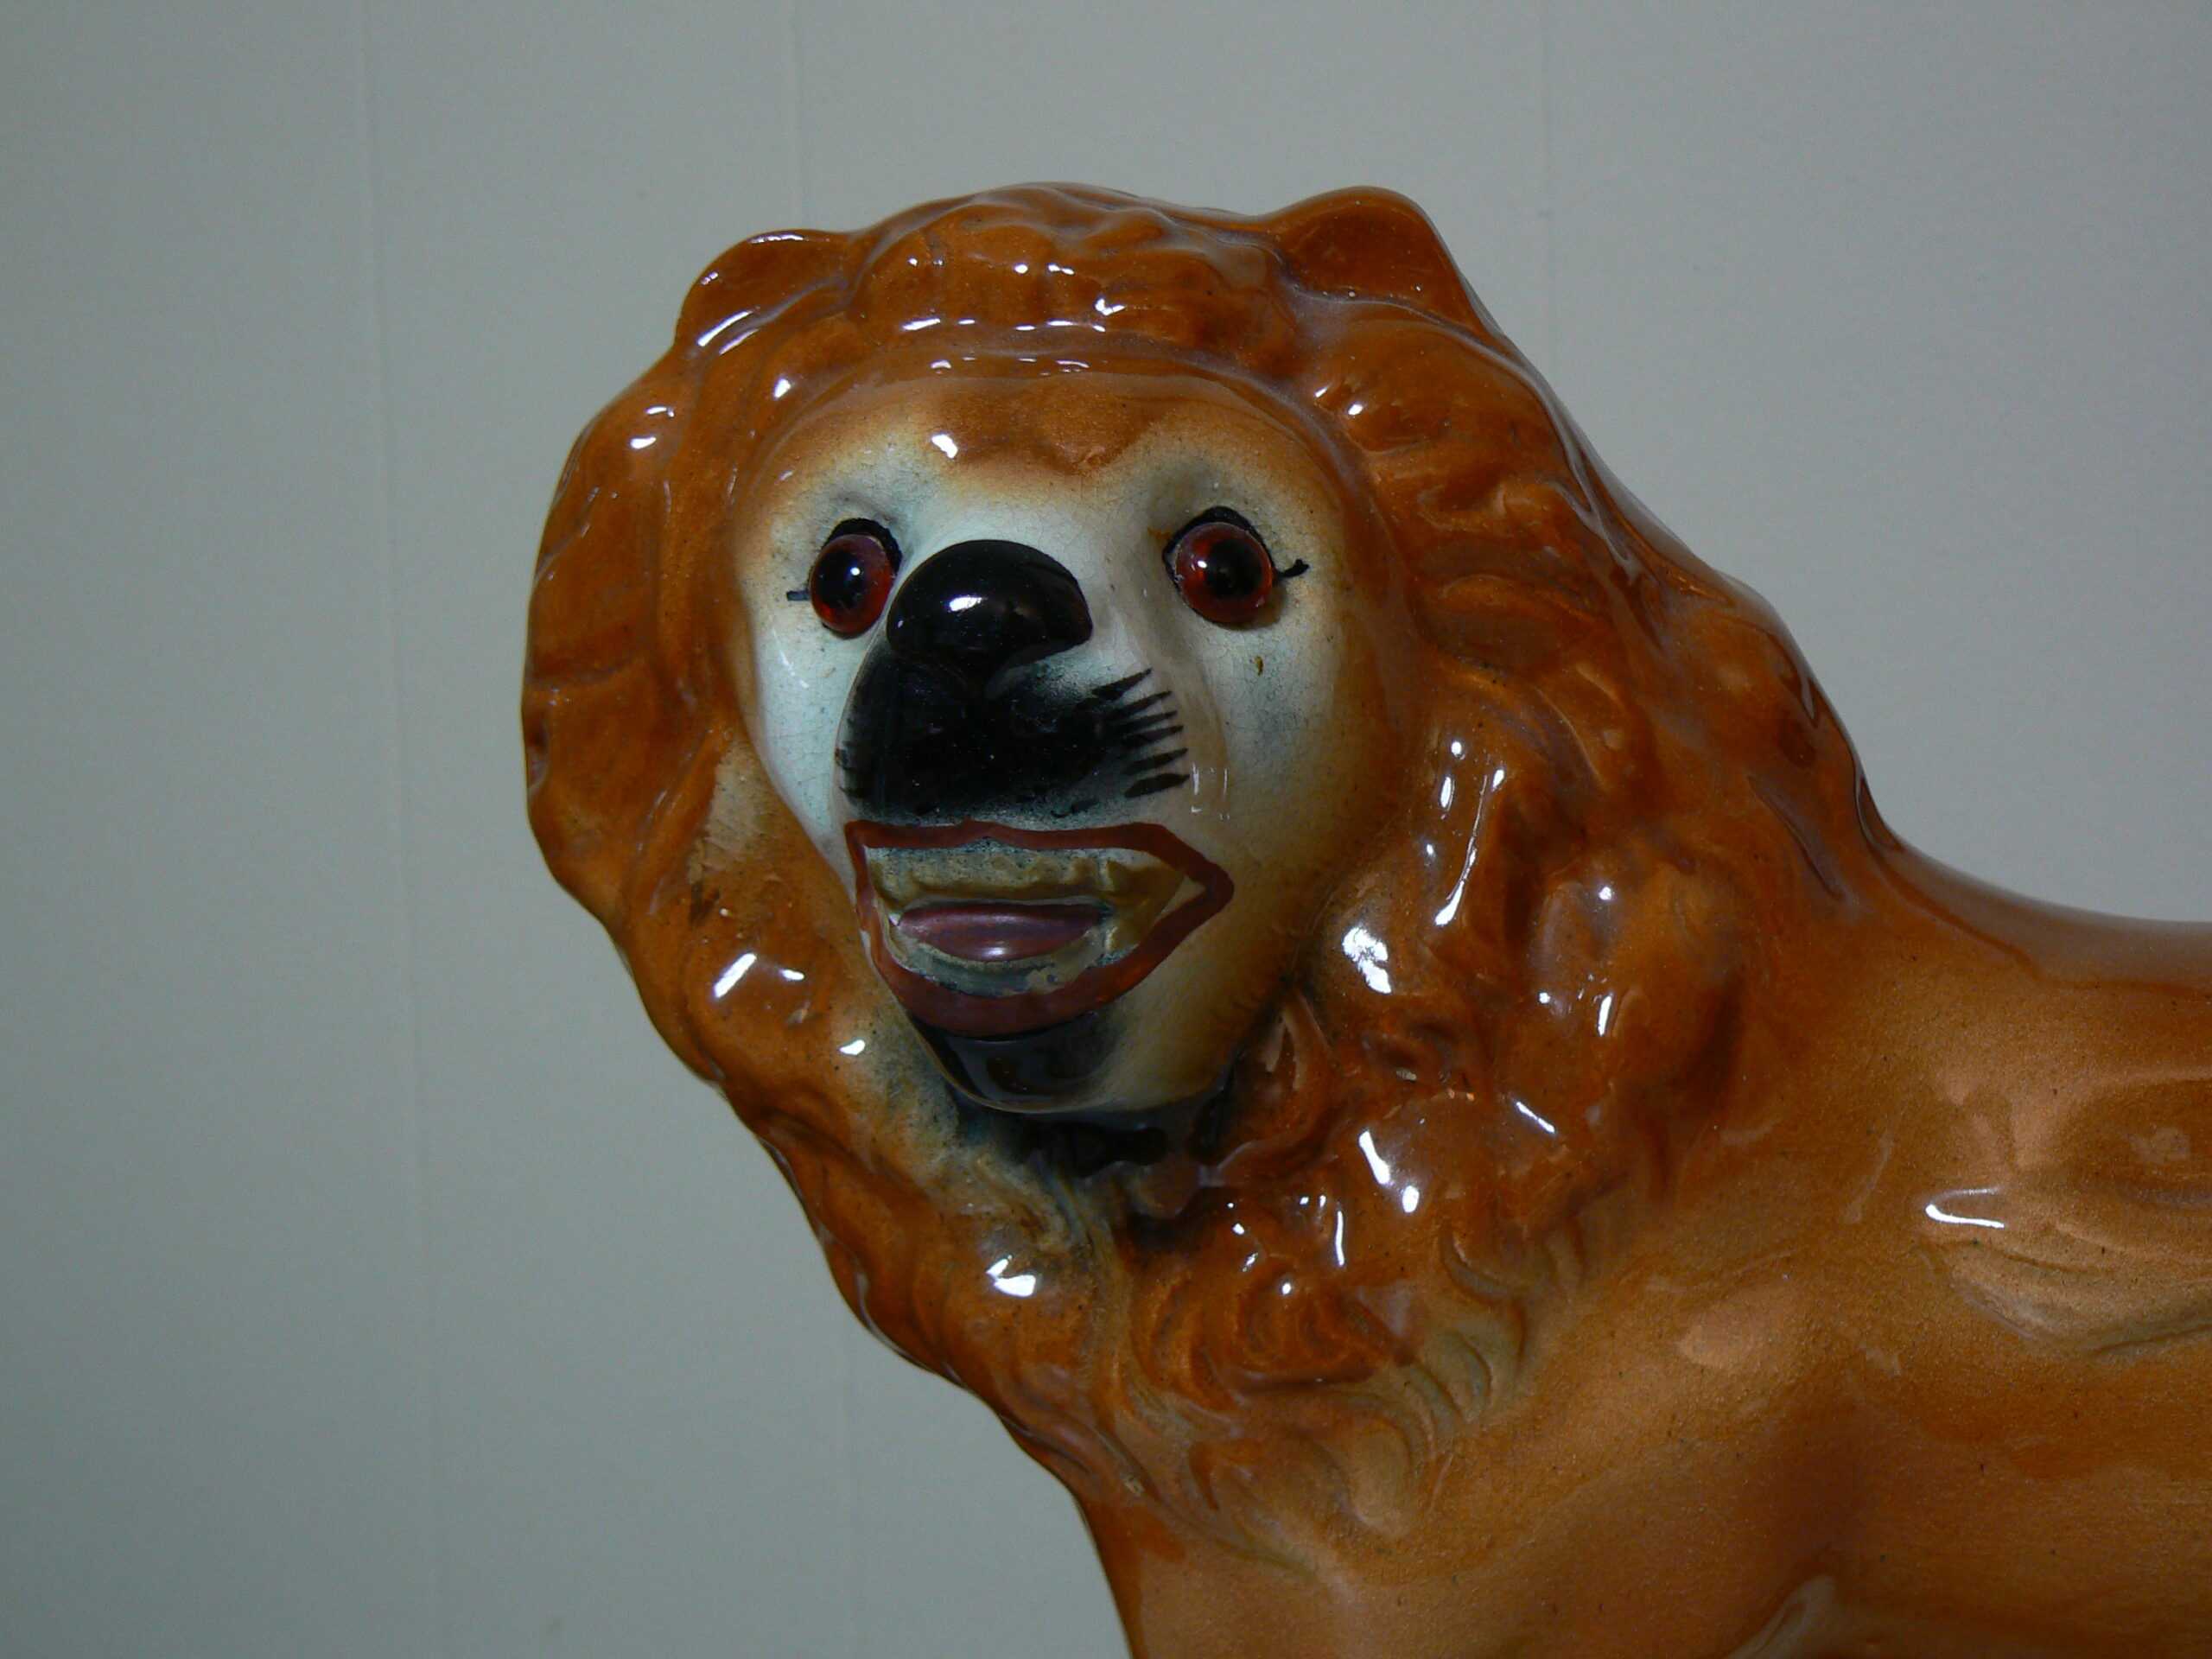 detail of antique staffordshire lion figurine ready for appraisal services from Dobesh Appraisal in Portland Oregon